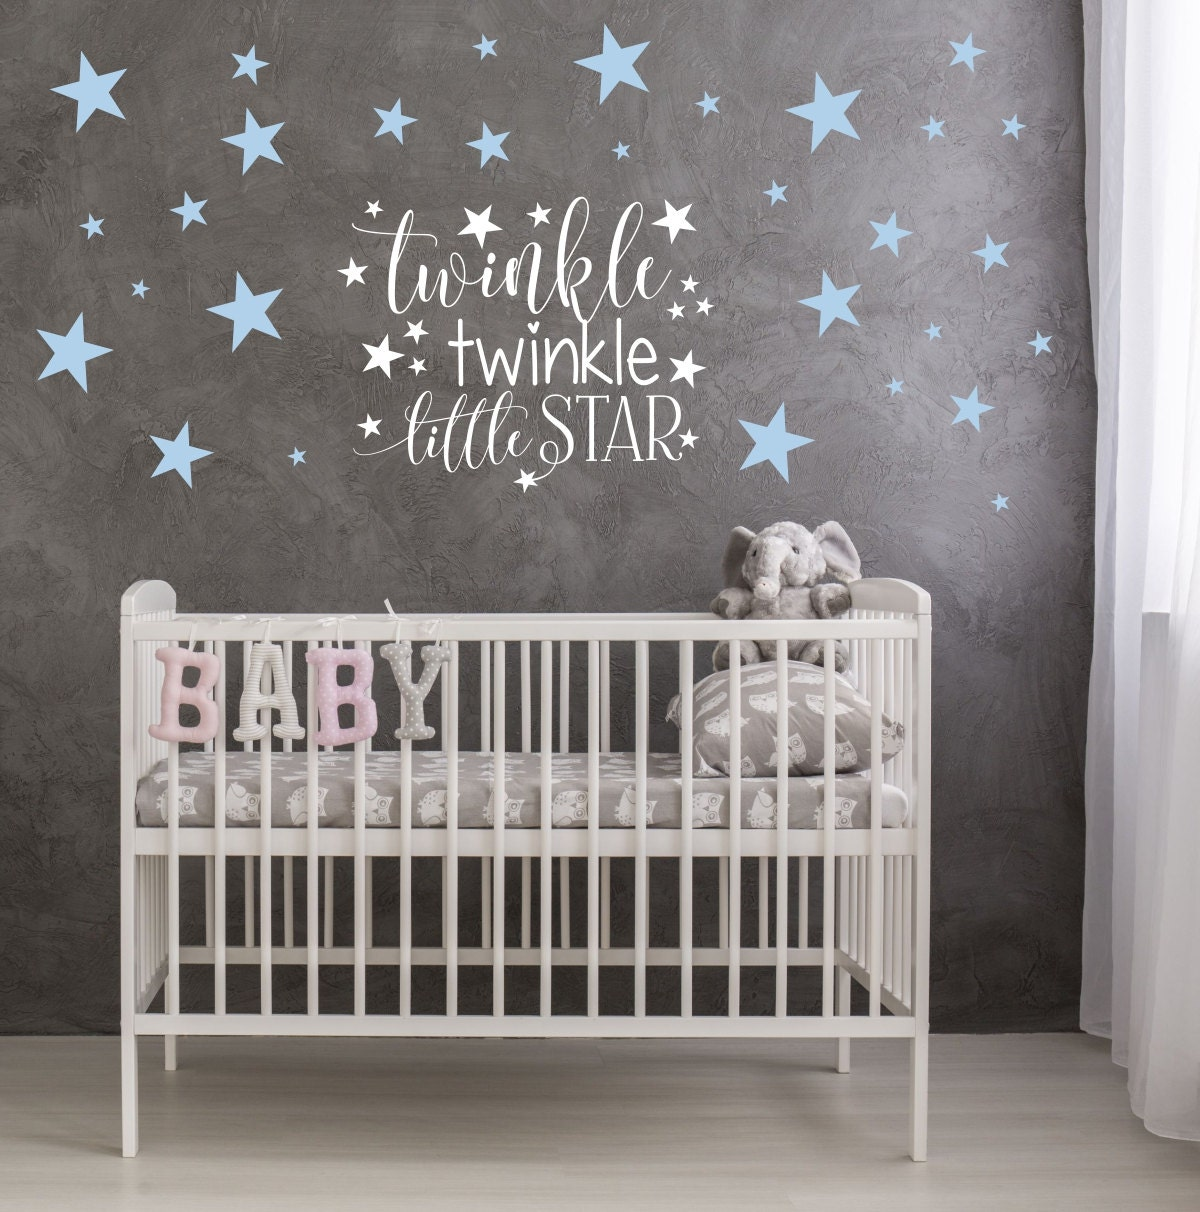 twinkle twinkle little star nursery decor star wall decals